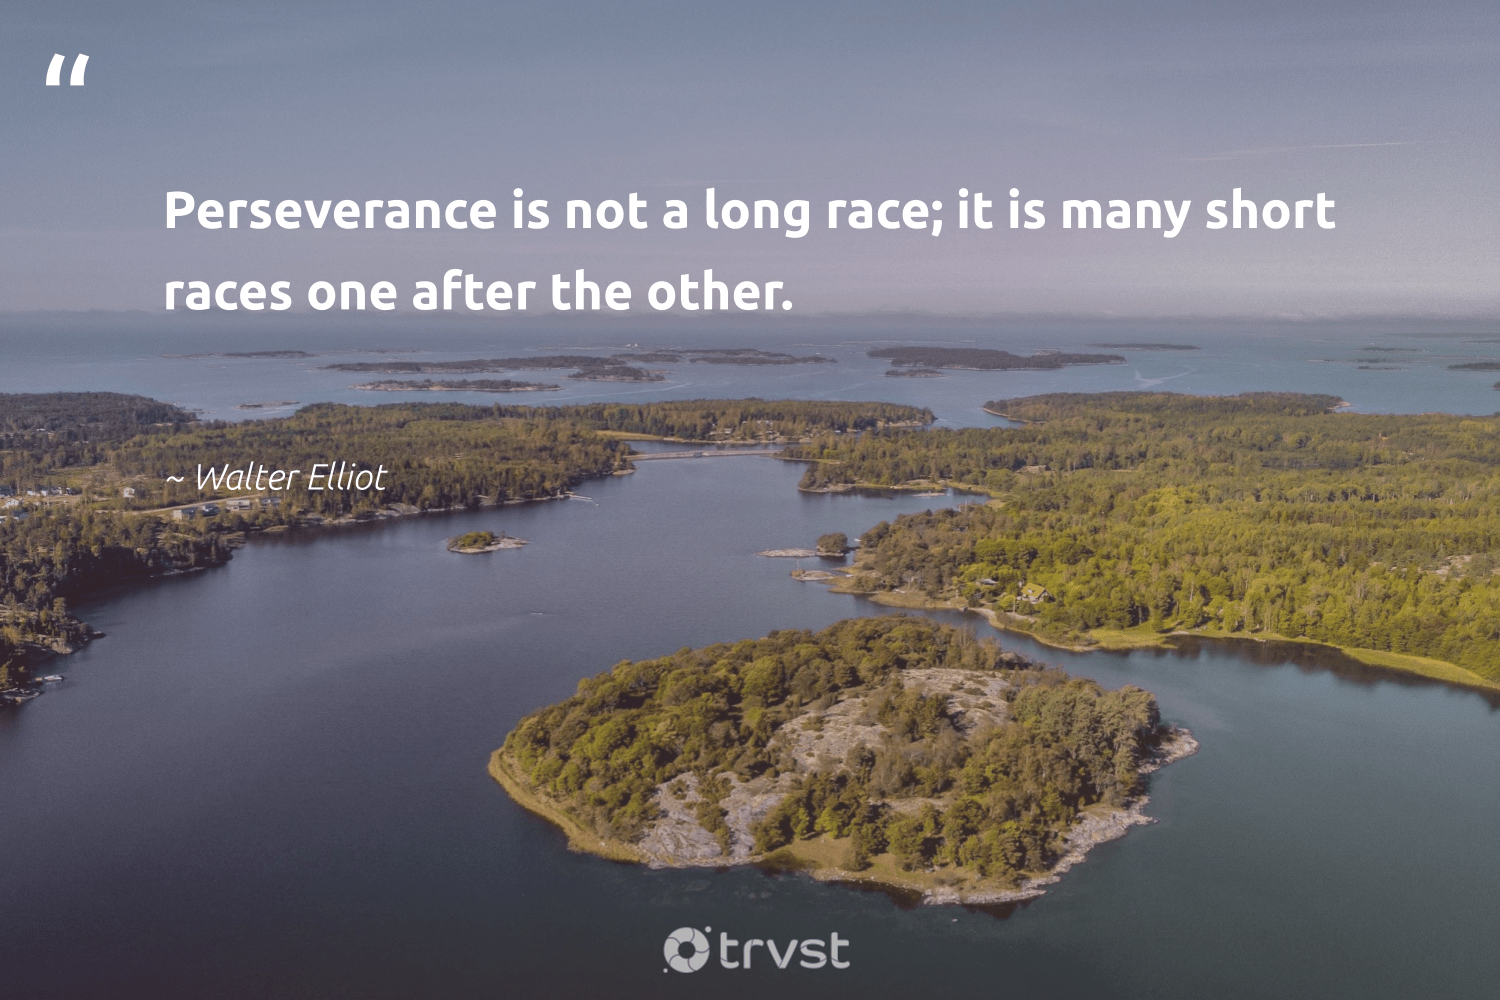 """""""Perseverance is not a long race; it is many short races one after the other.""""  - Walter Elliot #trvst #quotes #futureofwork #impact #softskills #dosomething #begreat #bethechange #nevergiveup #takeaction #changetheworld #dotherightthing"""